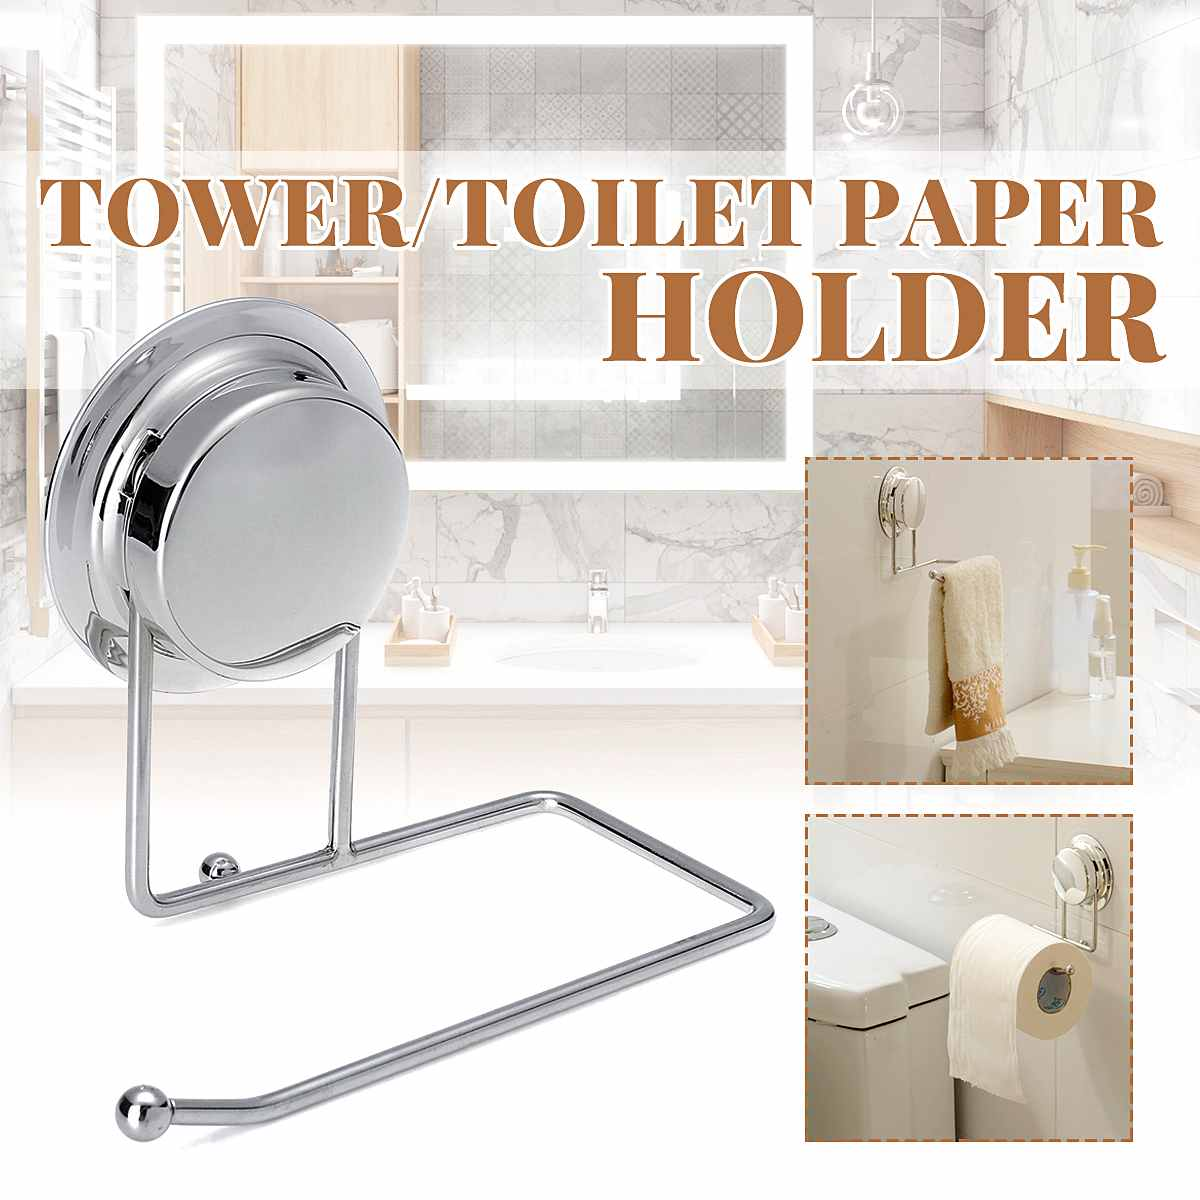 Toilet Kitchen Roll Paper Holder Stainless Steel Reusable Suction Cup Towel Ho Rack Rail Bathroom Home Storage Accessories